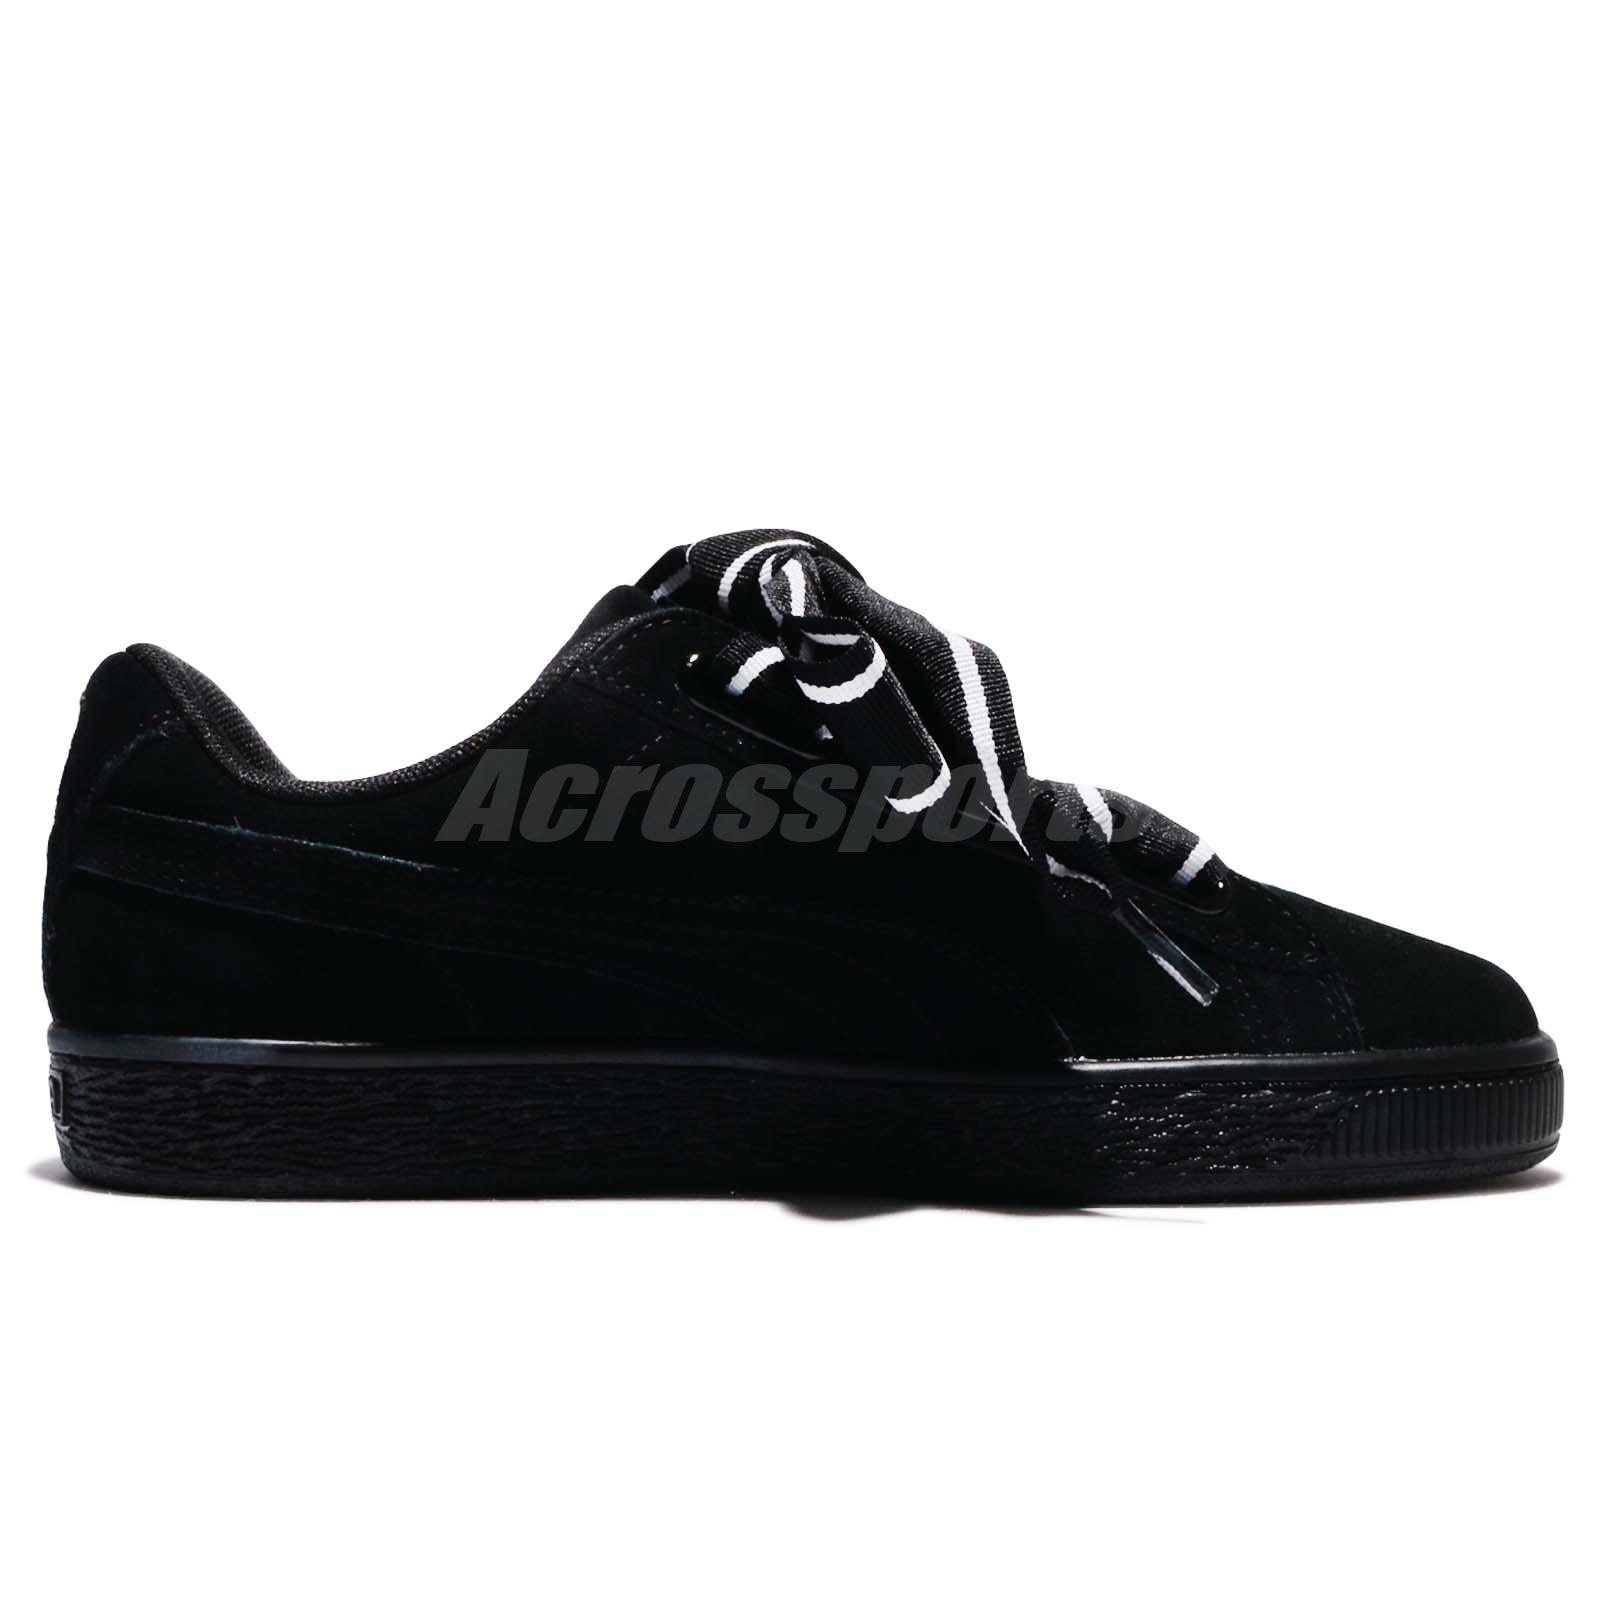 Puma Suede Heart Satin II Wns 2 Black White Suede Women Shoes ... be7c5554f